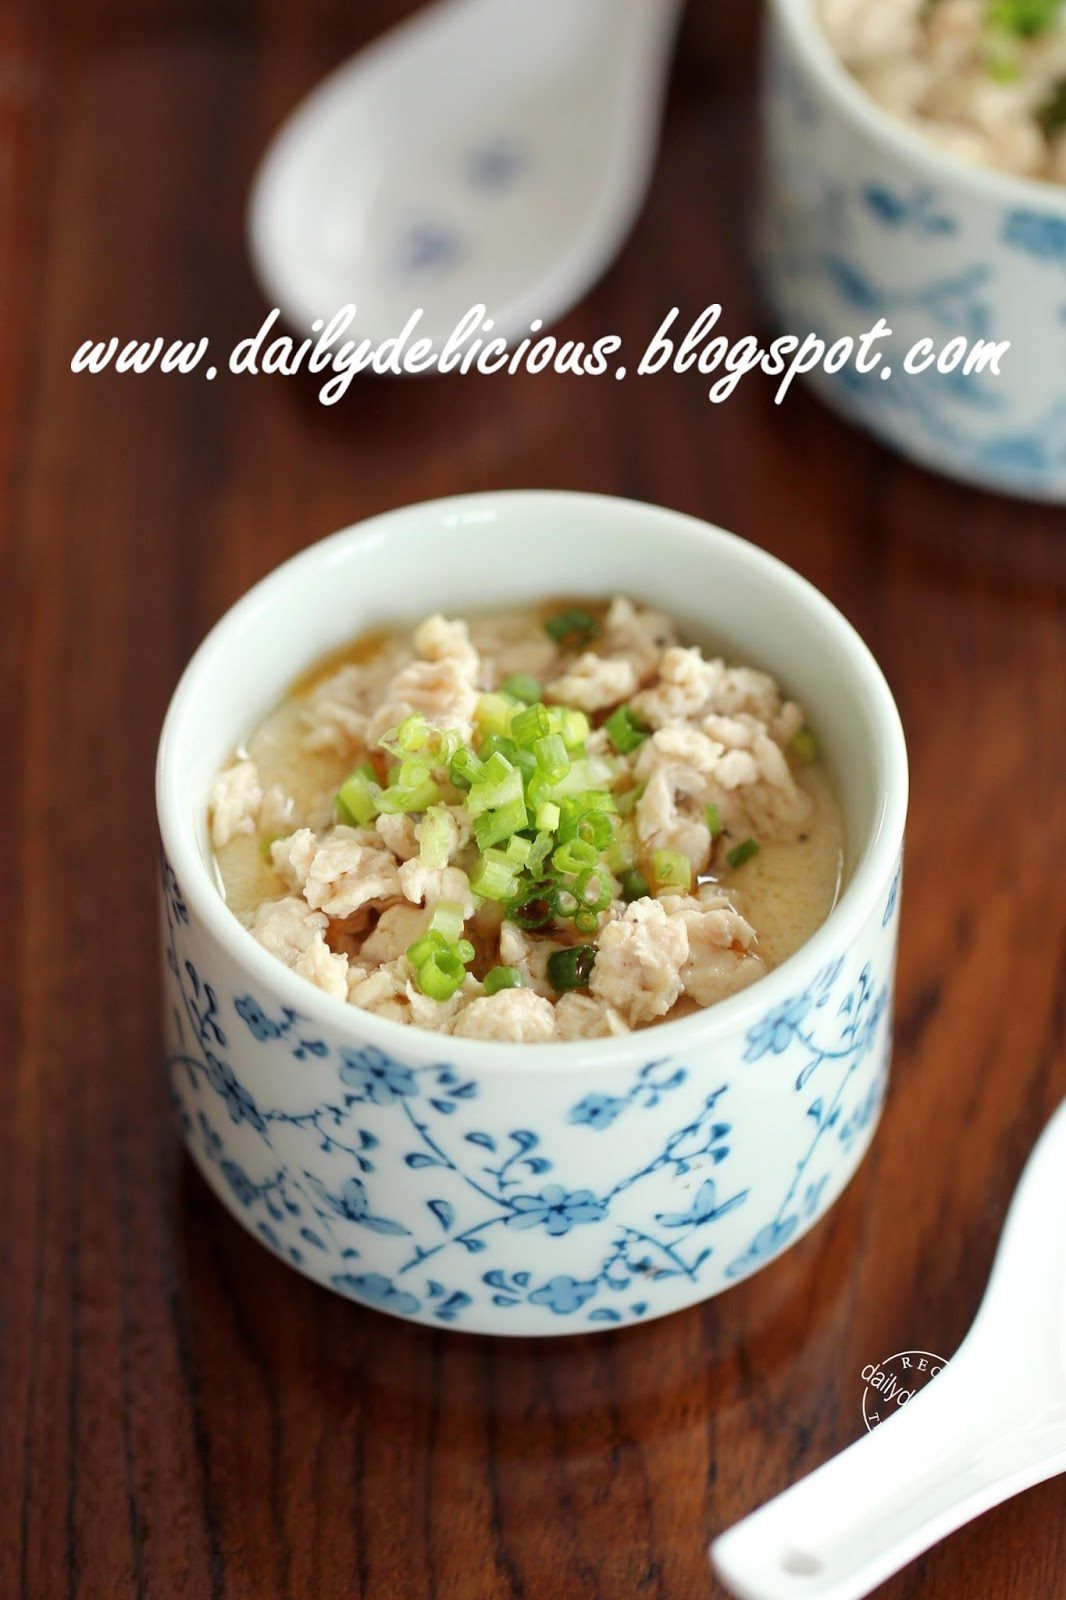 Dailydelicious happy cooking with lg solardom chinese style happy cooking with lg solardom chinese style steamed egg with minced chicken forumfinder Gallery